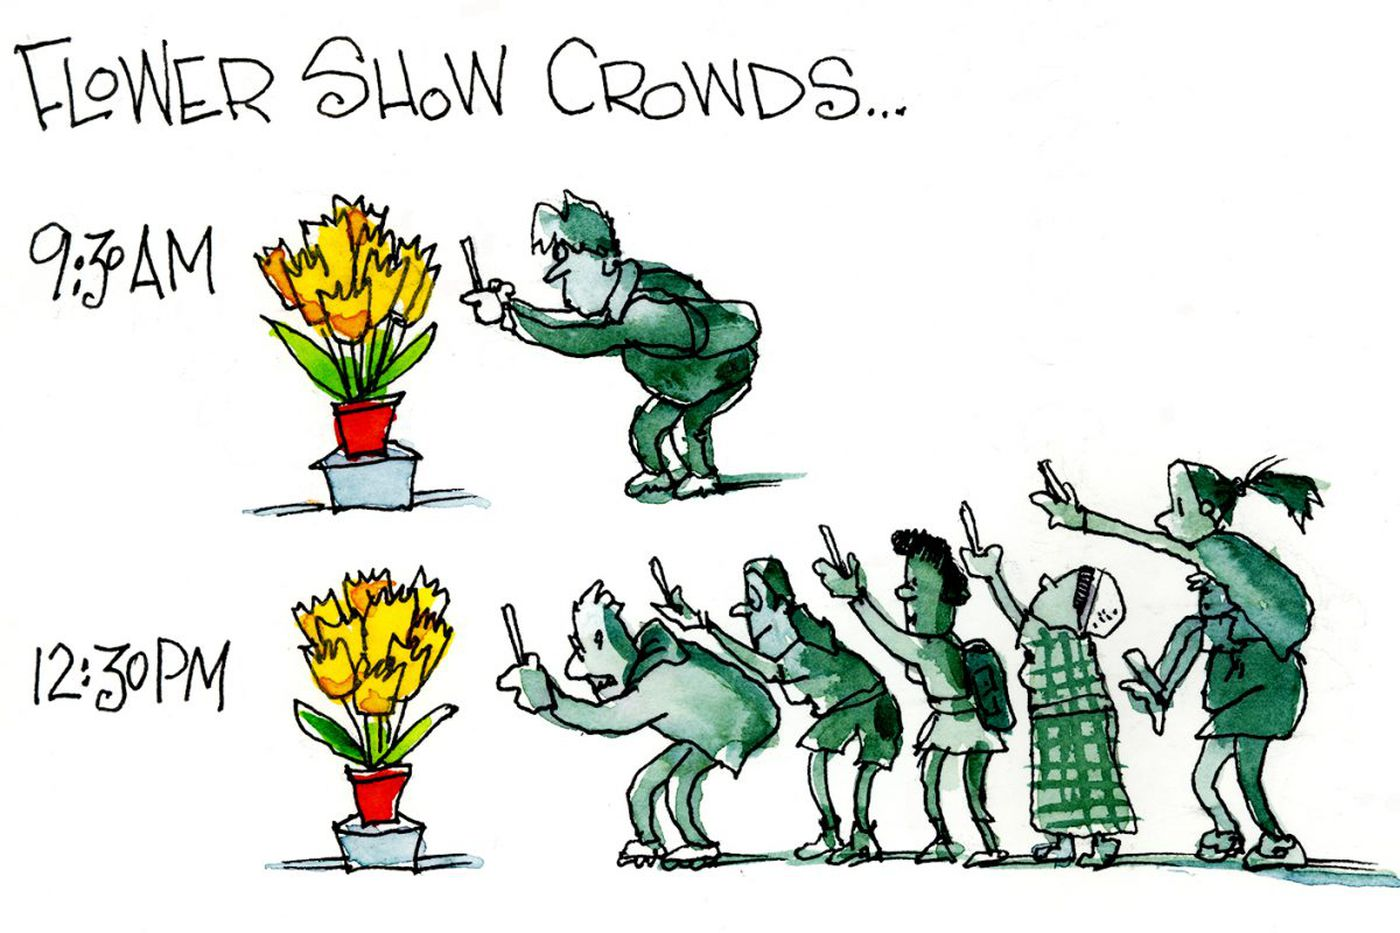 Sketches from the Philadelphia Flower Show